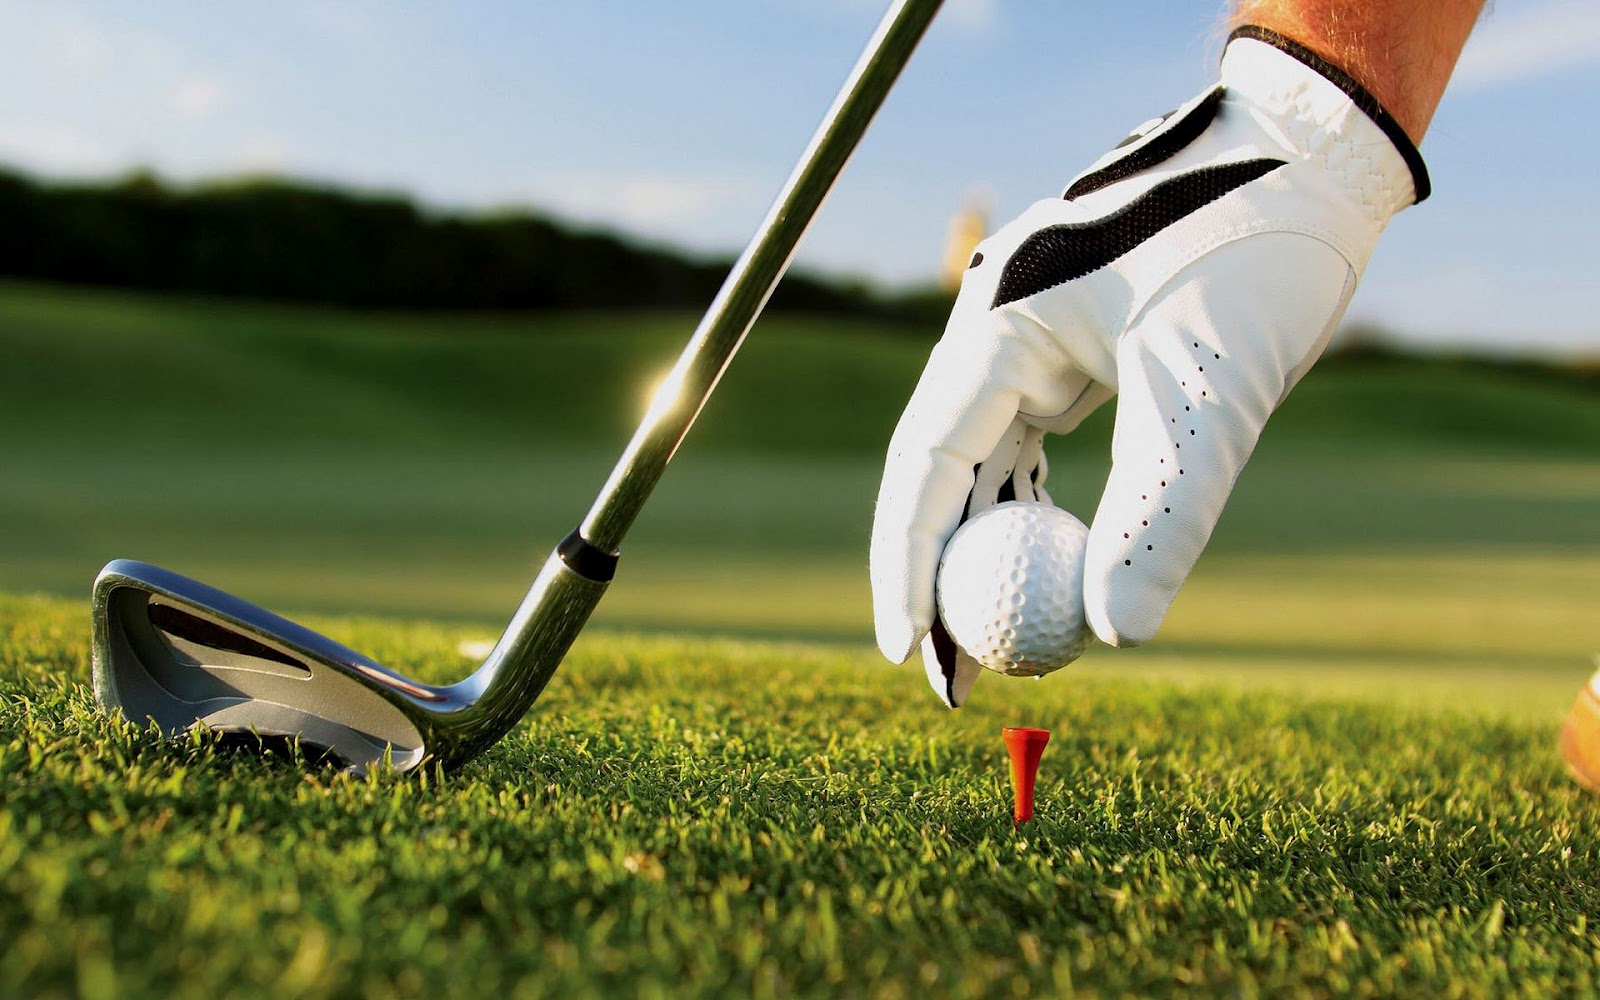 Sports wallpaper with someone putting a golfball on the tee 1600x1000